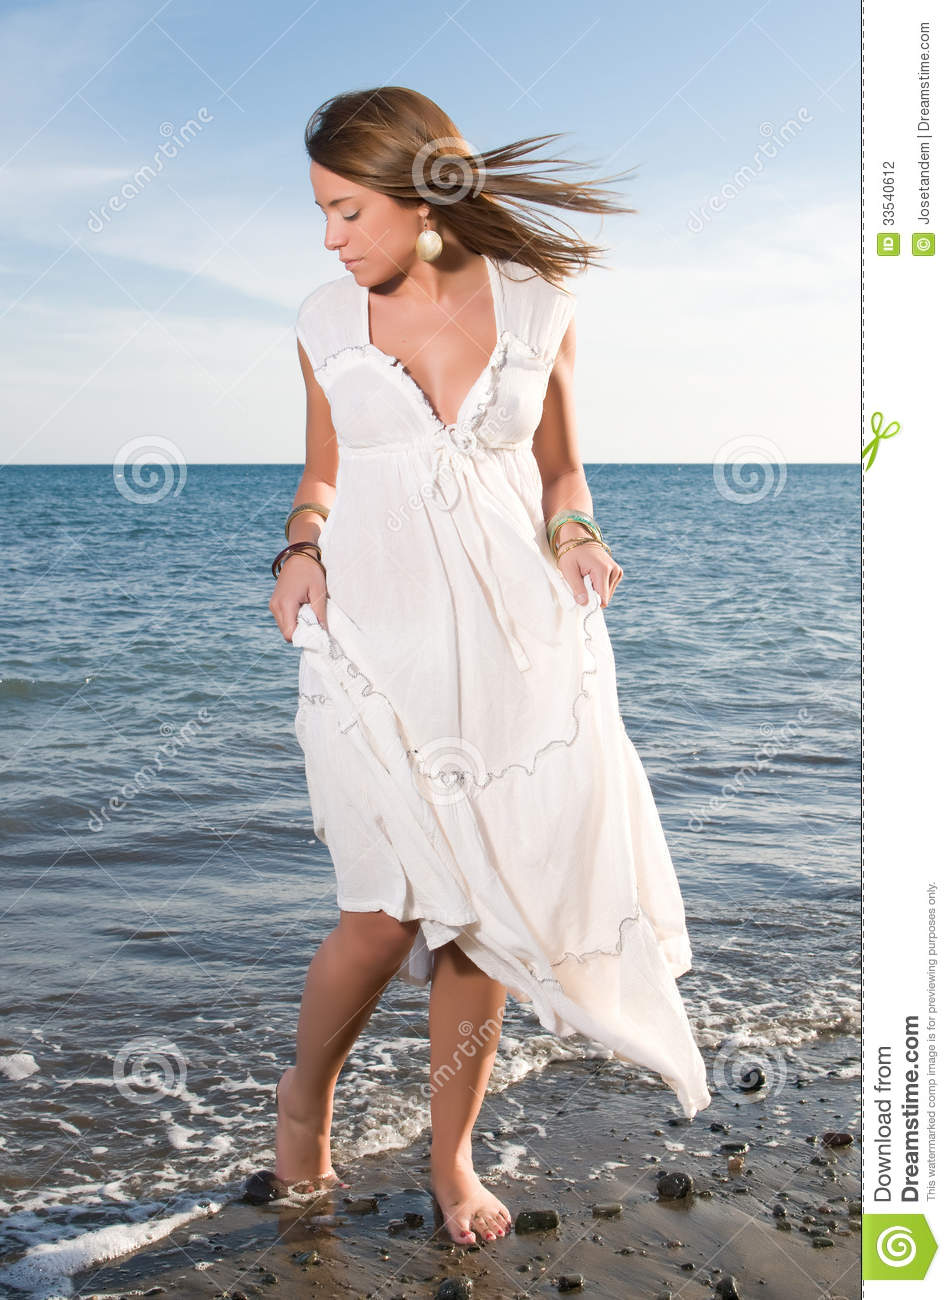 Woman In White Dress Near The Seaside Stock Photo - Image ...